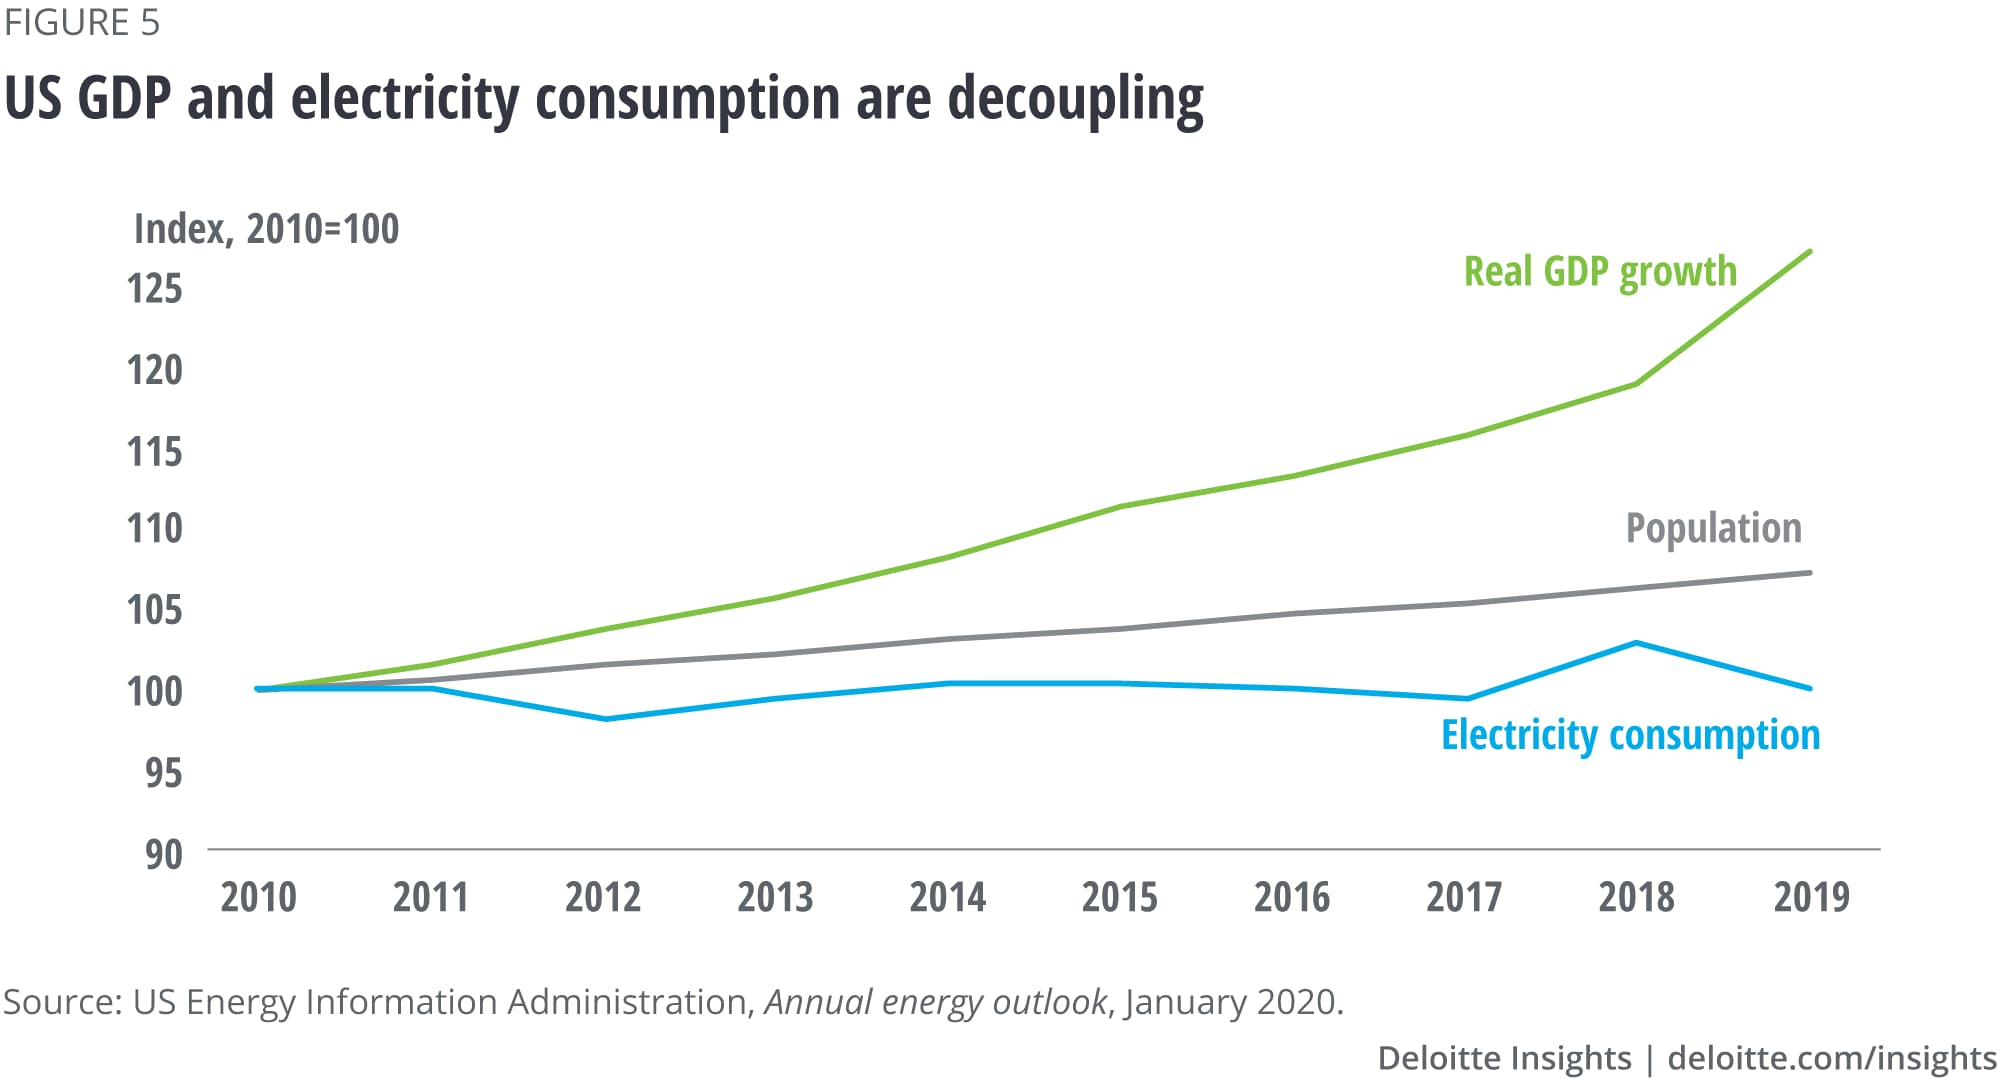 US GDP and electricity consumption are decoupling